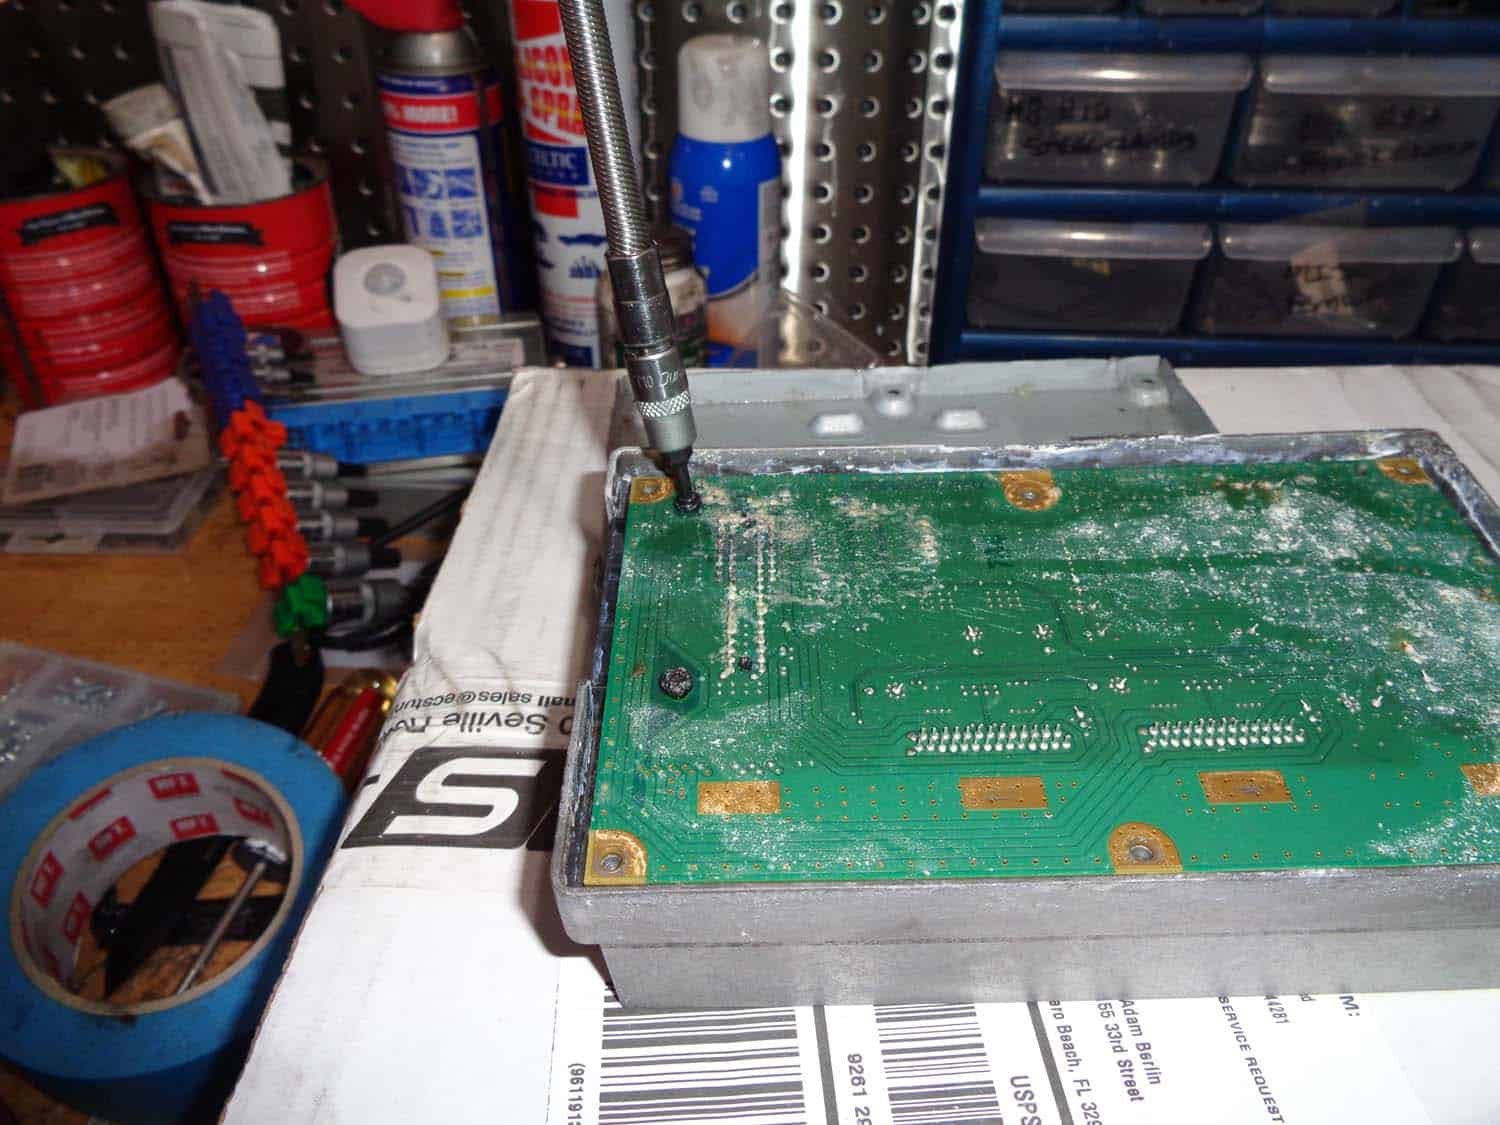 bmw e90 amplifier water damage repair - remove the circuit board mounting screws